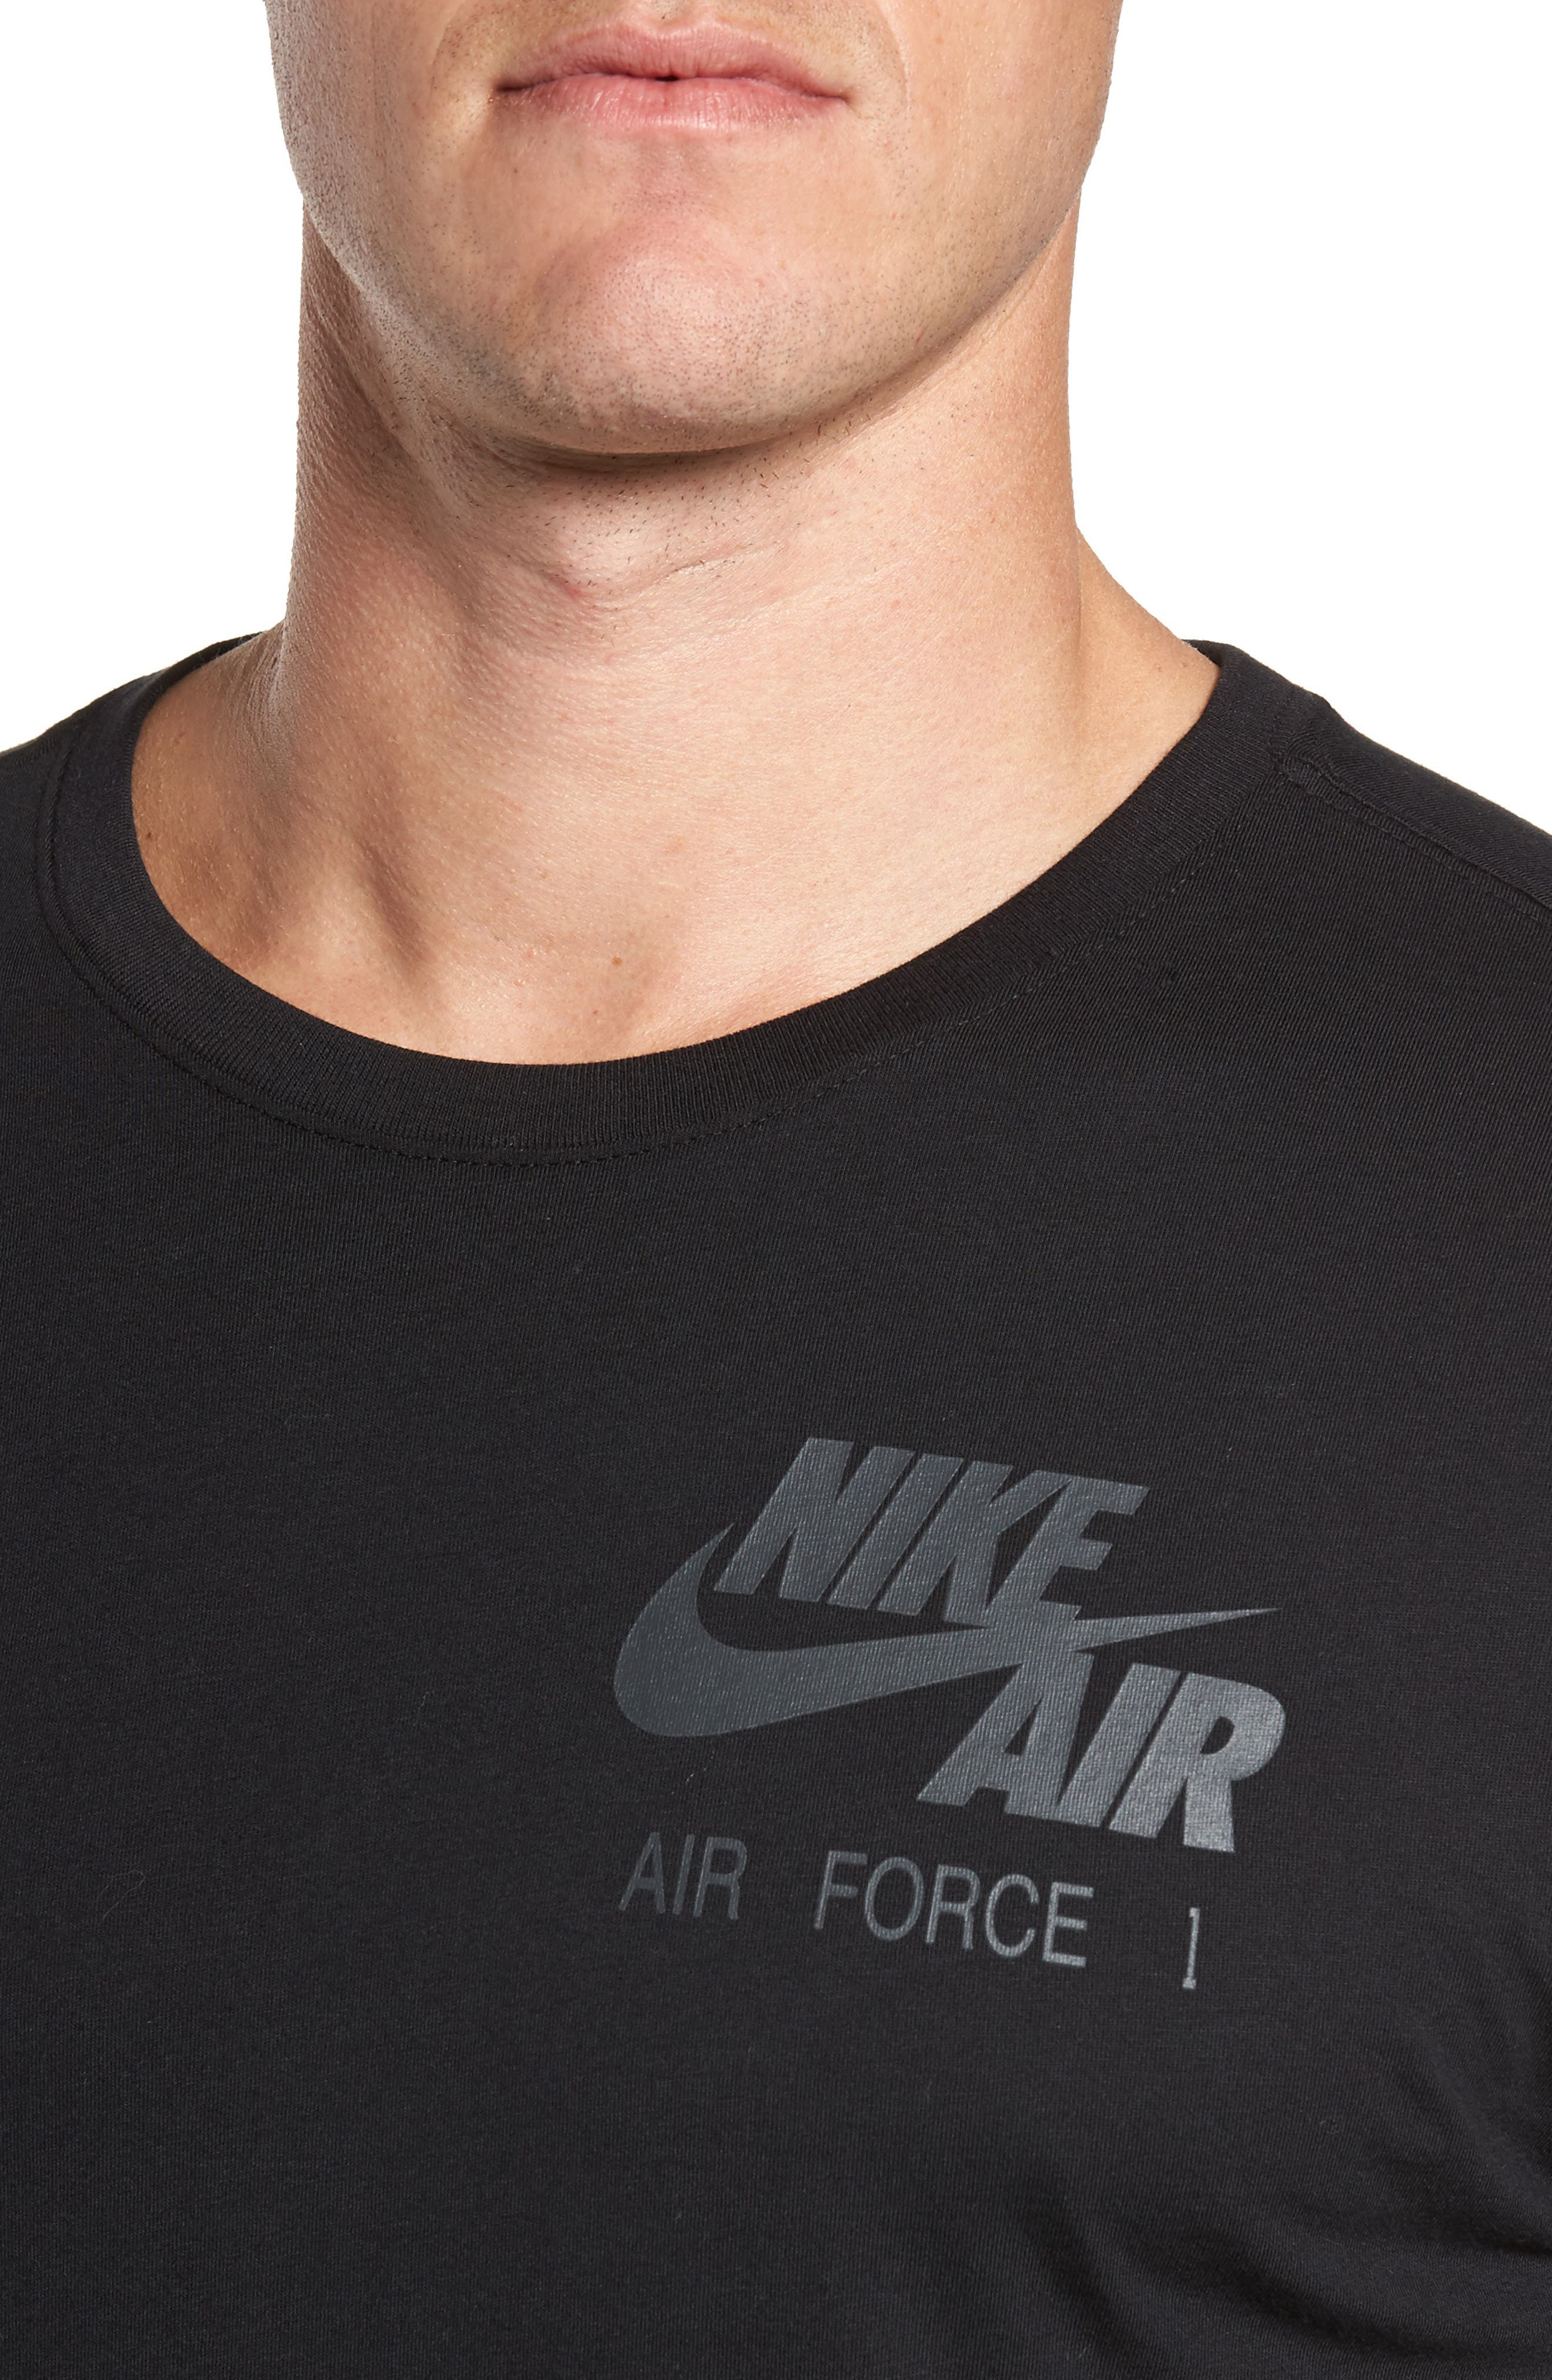 Air Force 1 Long Sleeve T-Shirt,                             Alternate thumbnail 4, color,                             010